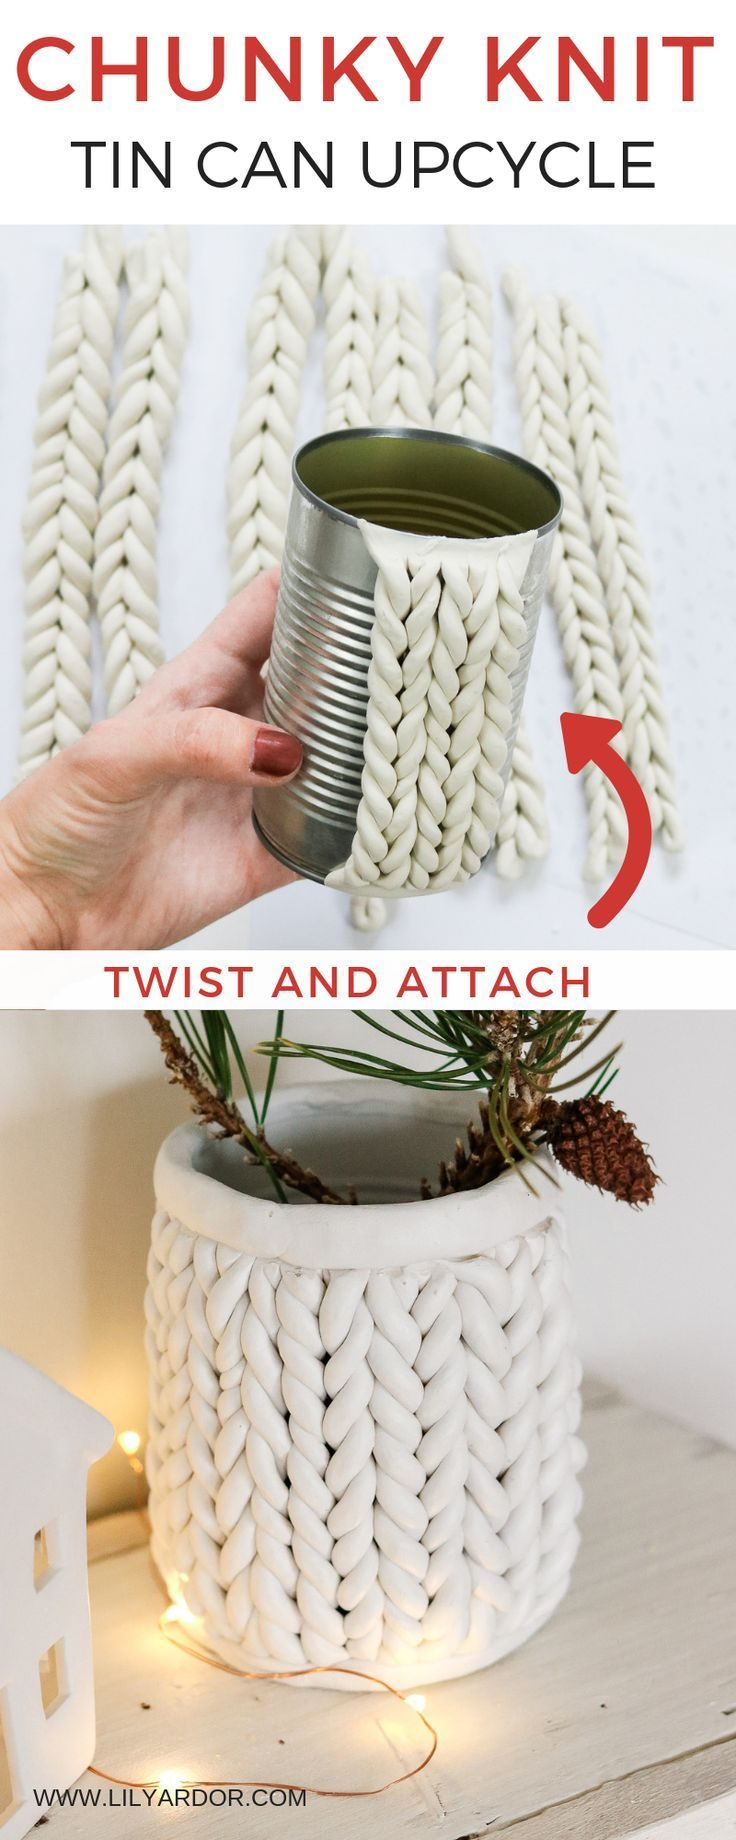 Photo of DIY Chunky knit using Clay – Chunky Knit Planter – Lily Ardor